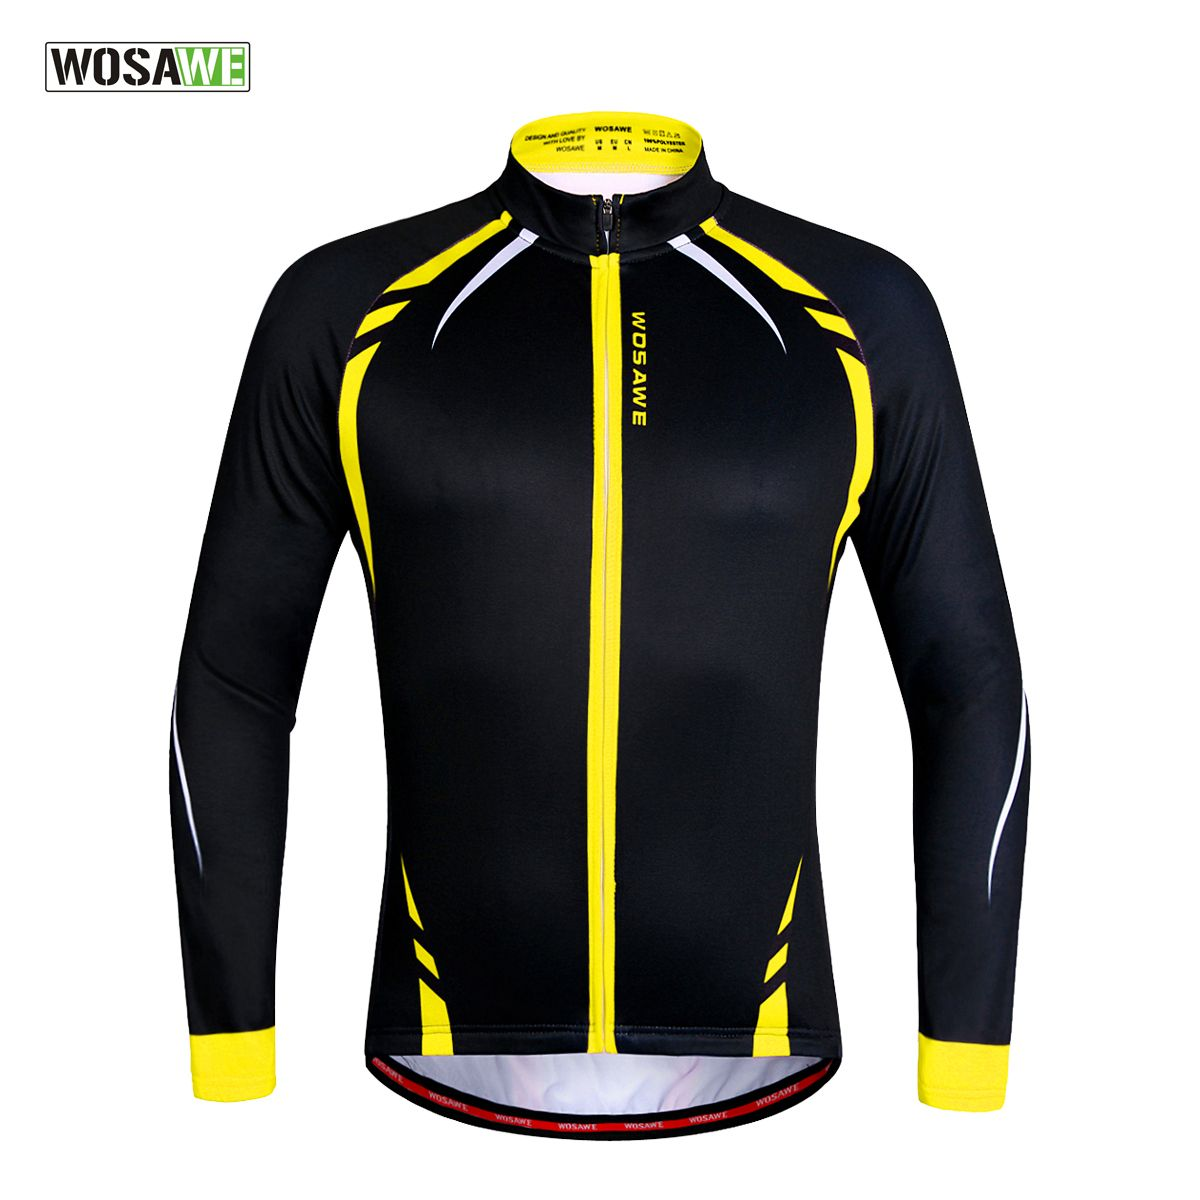 WOSAWE Thermal Cycling Jackets Yellow Windproof Long Sleeve Jersey MTB Bike Bicycle ciclismo Reflective Fleece Cycling Clothing